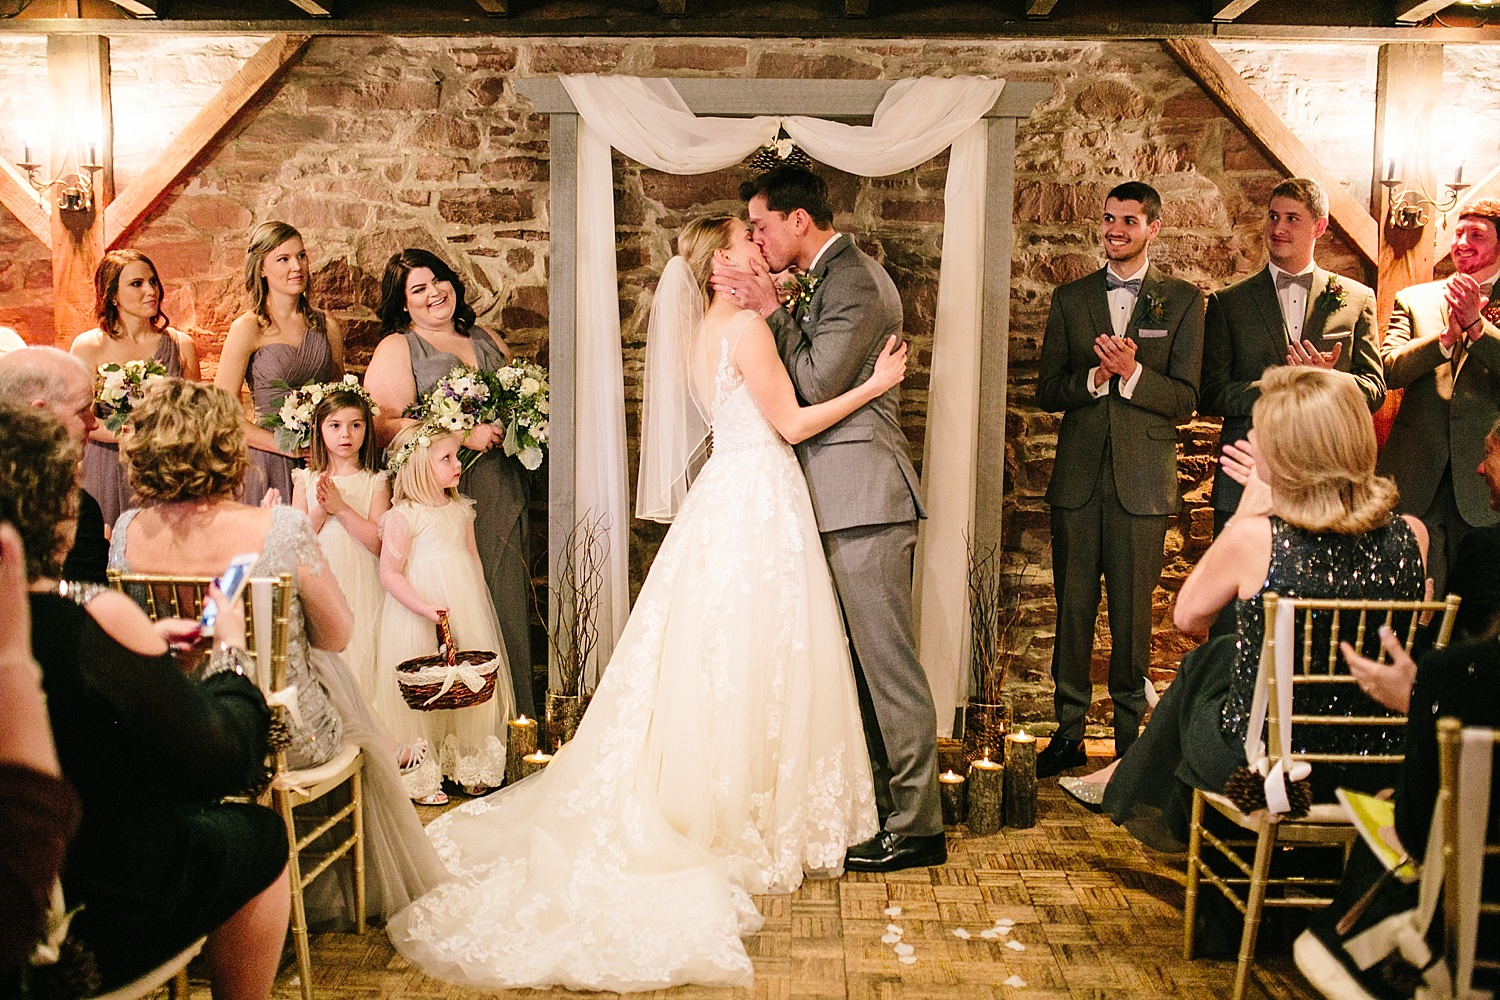 jessdavid_barnonbridge_phoenixville_winter_wedding_image_074.jpg